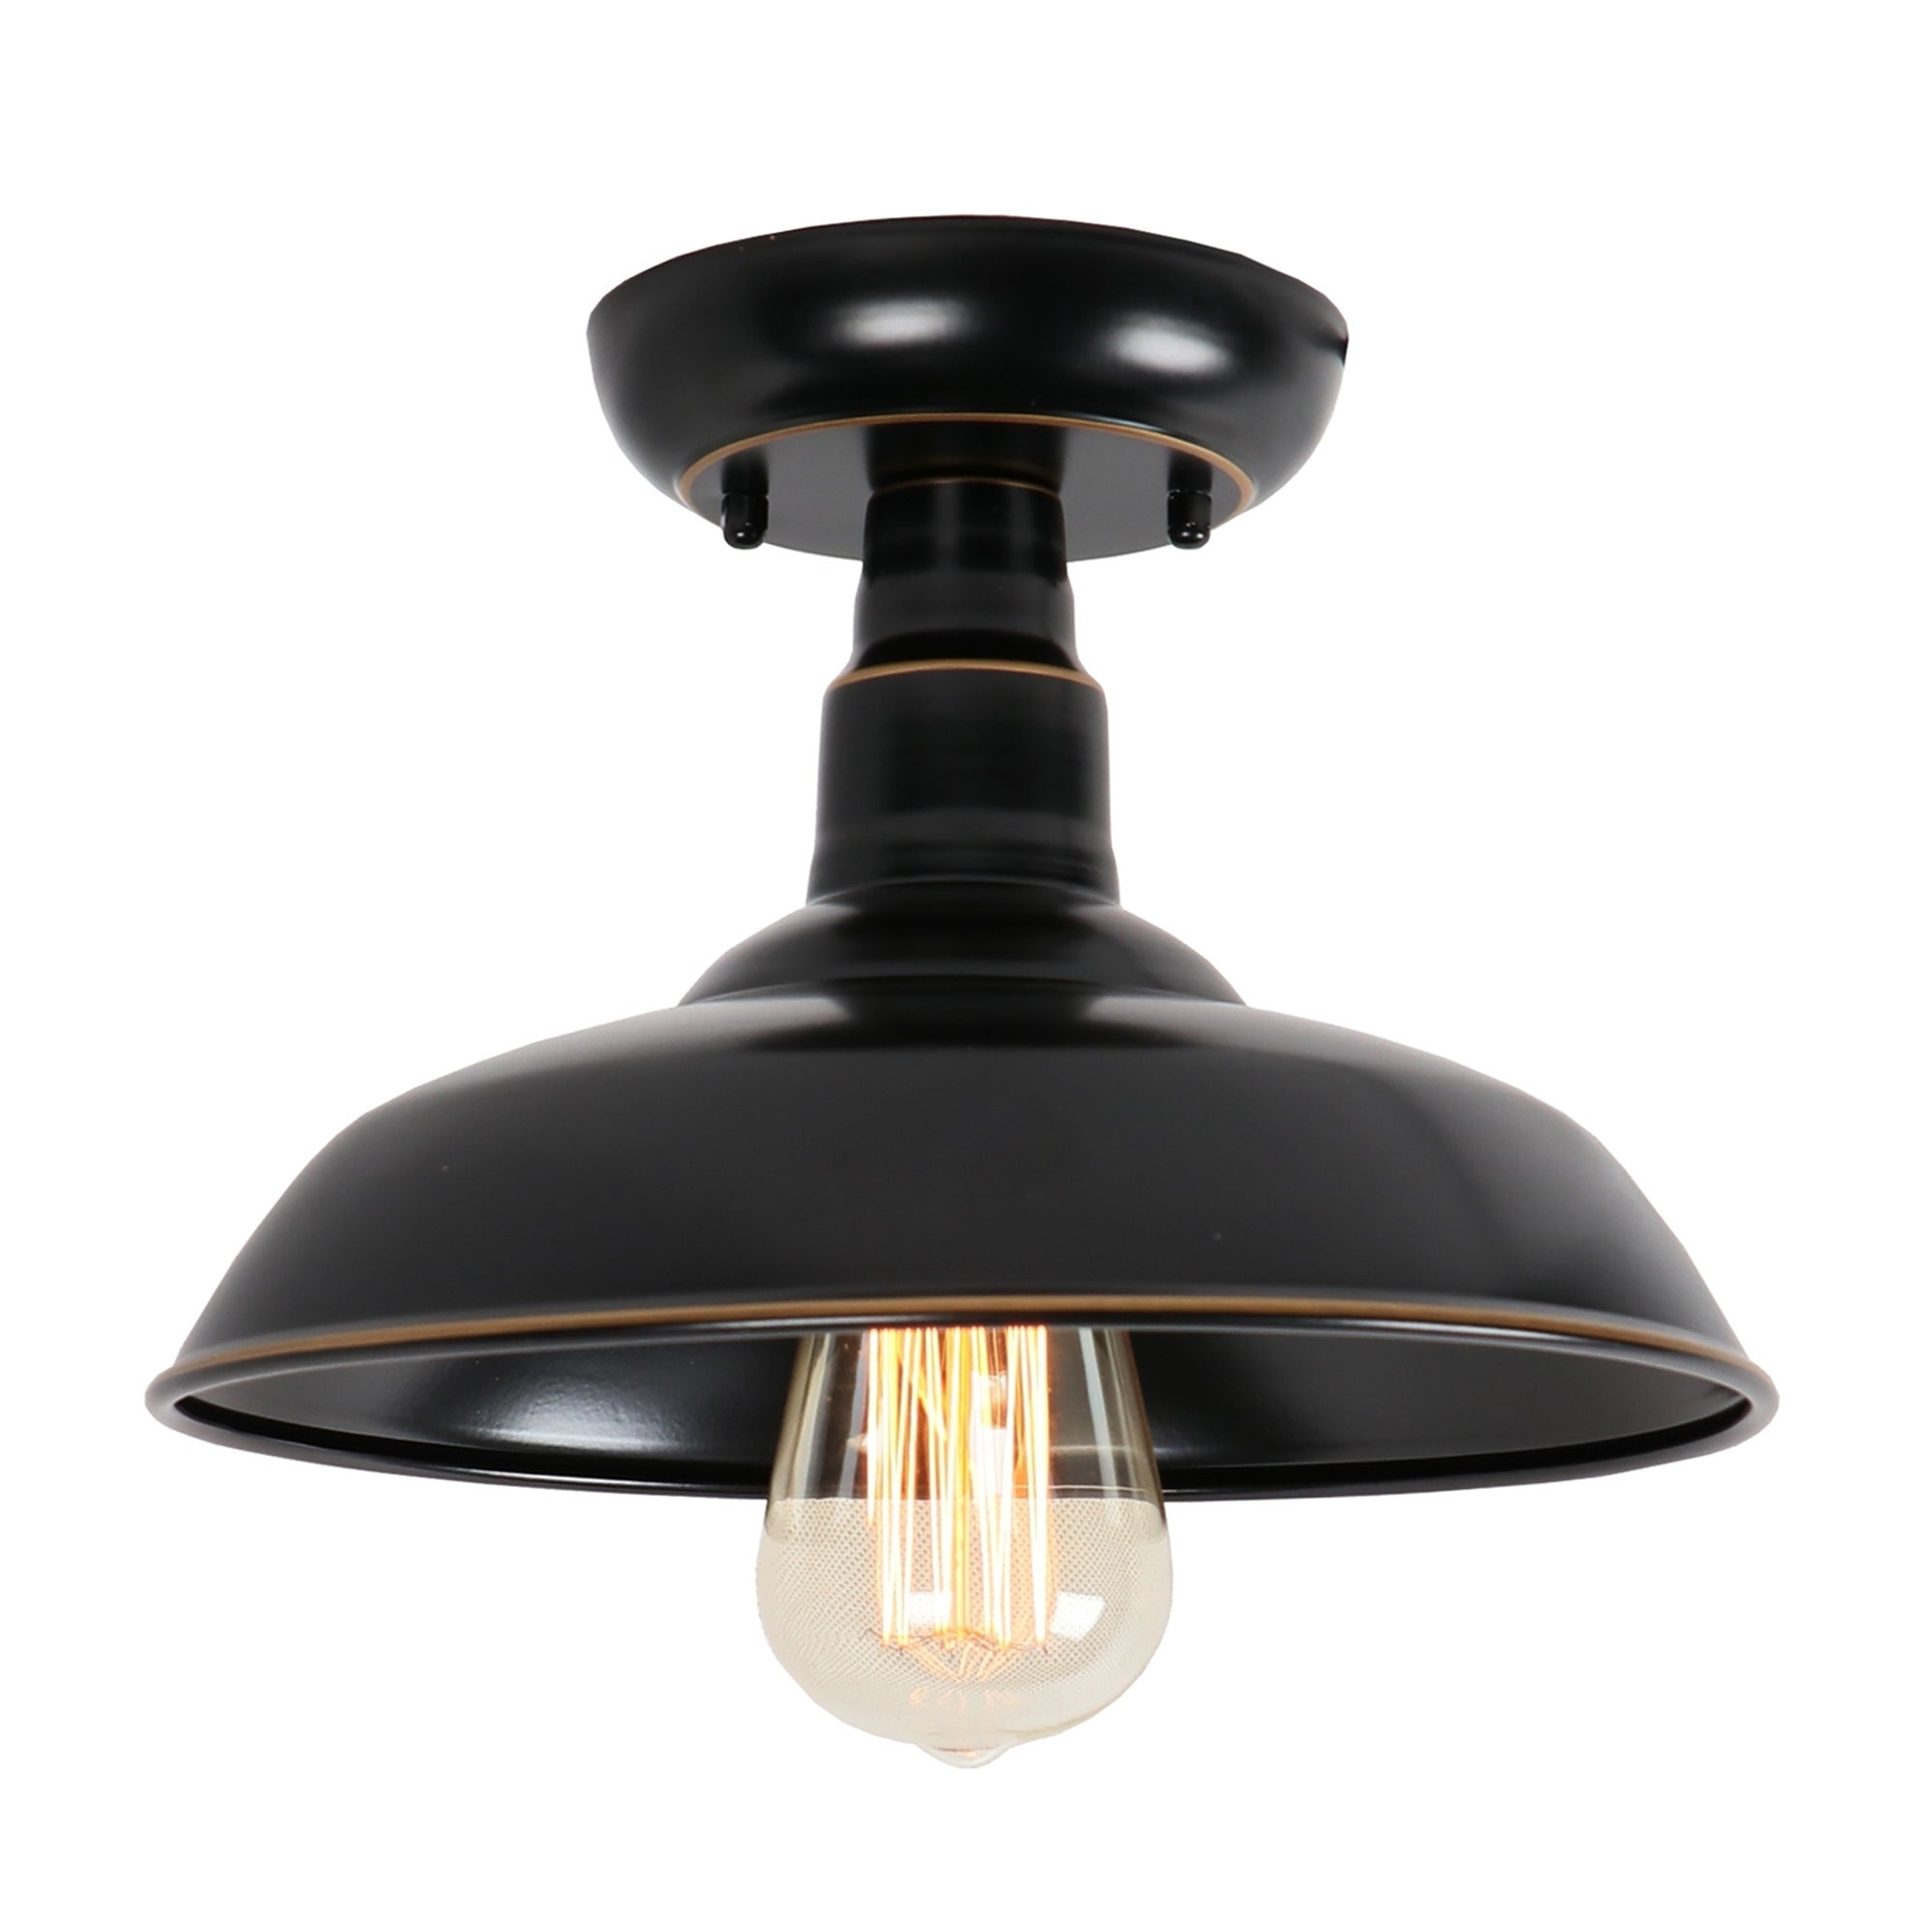 Wondrous 1 Light Outdoor Ceiling Mounted Lighting In Imperial Black Download Free Architecture Designs Intelgarnamadebymaigaardcom